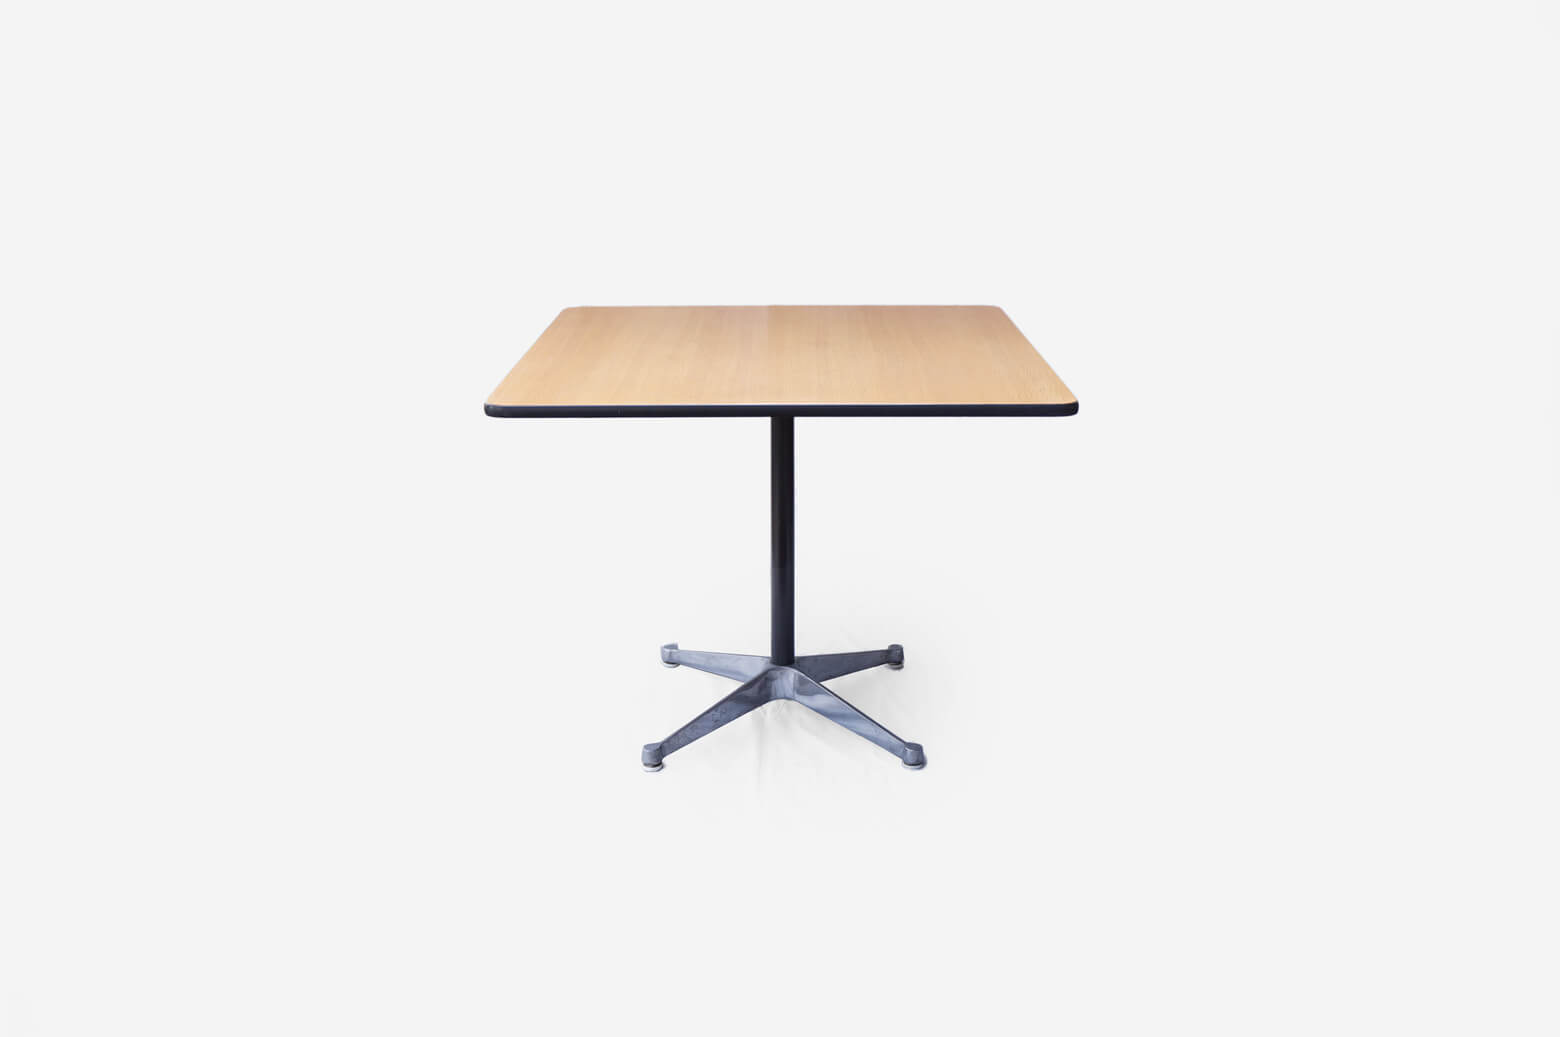 Vintage Herman Miller Contract Base Square Table/ヴィンテージ ハーマンミラー コントラクトベース 正方テーブル